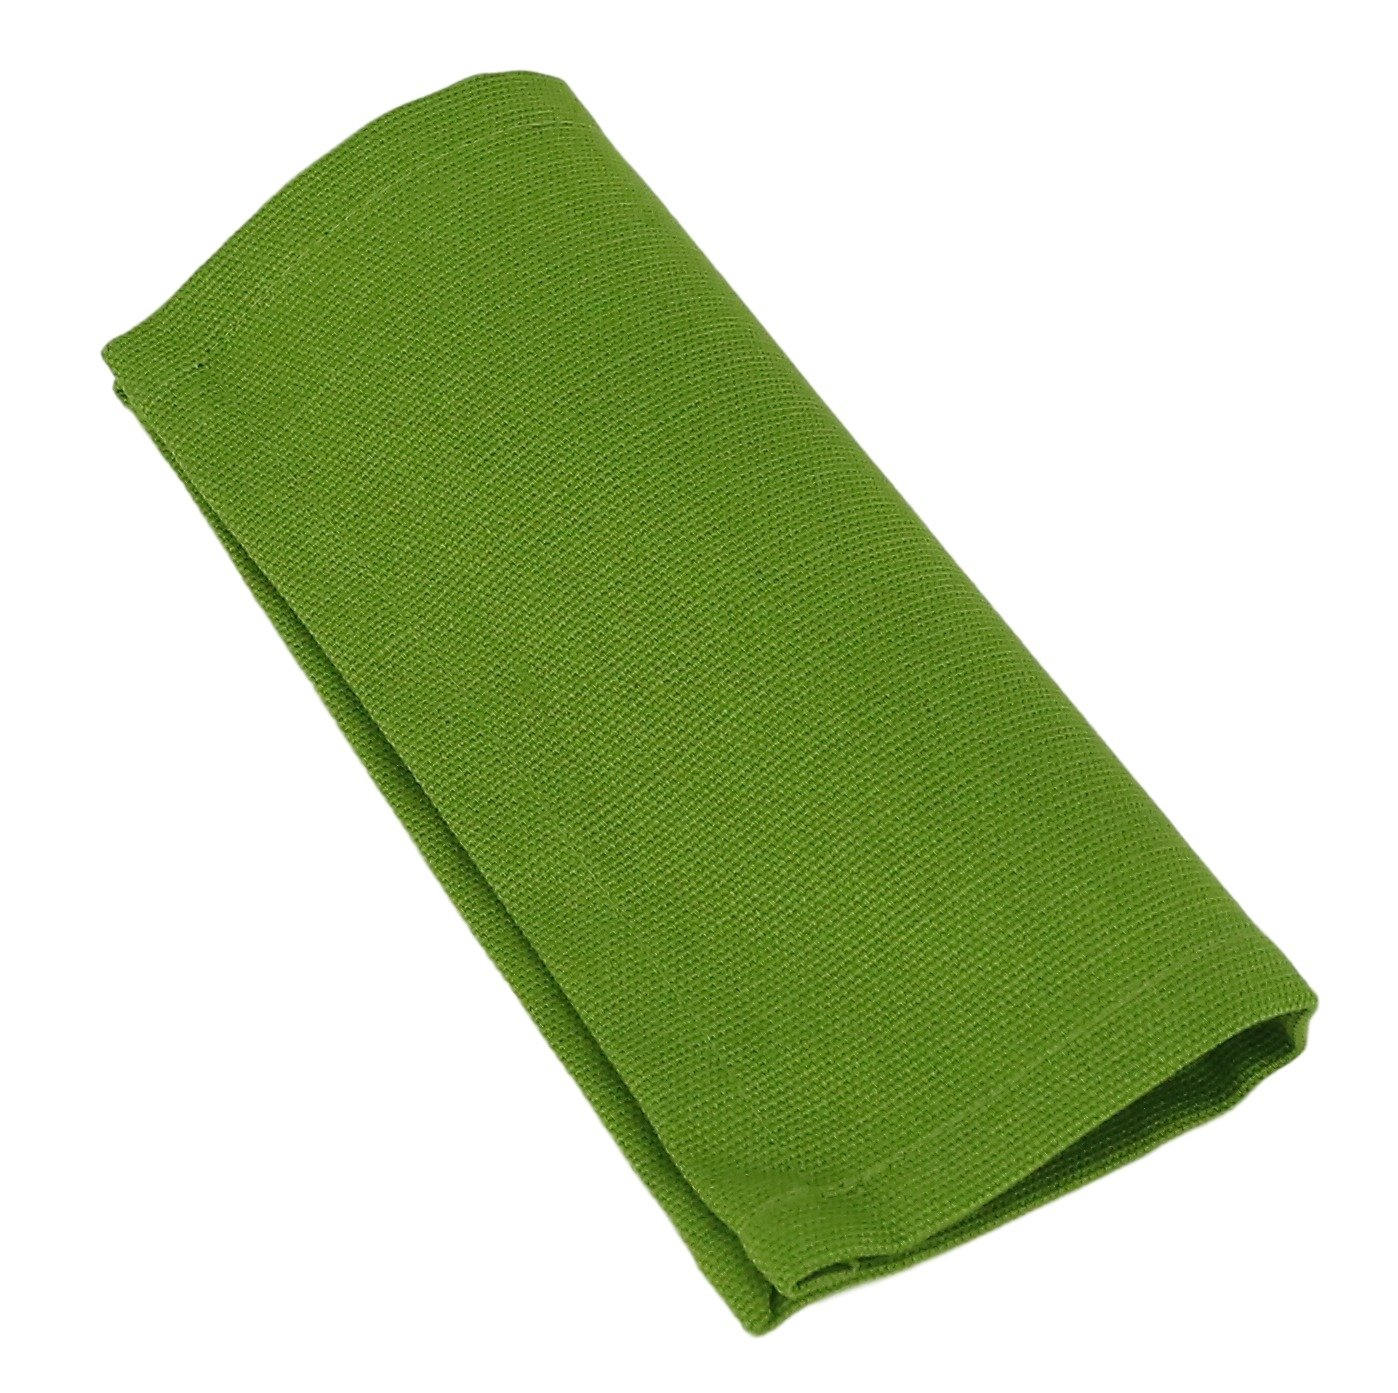 Cotton Set of 6 24 x 24 ShalinIndia Cloth Dinner Napkins Green Perfect for Weddings /& Dinner Parties